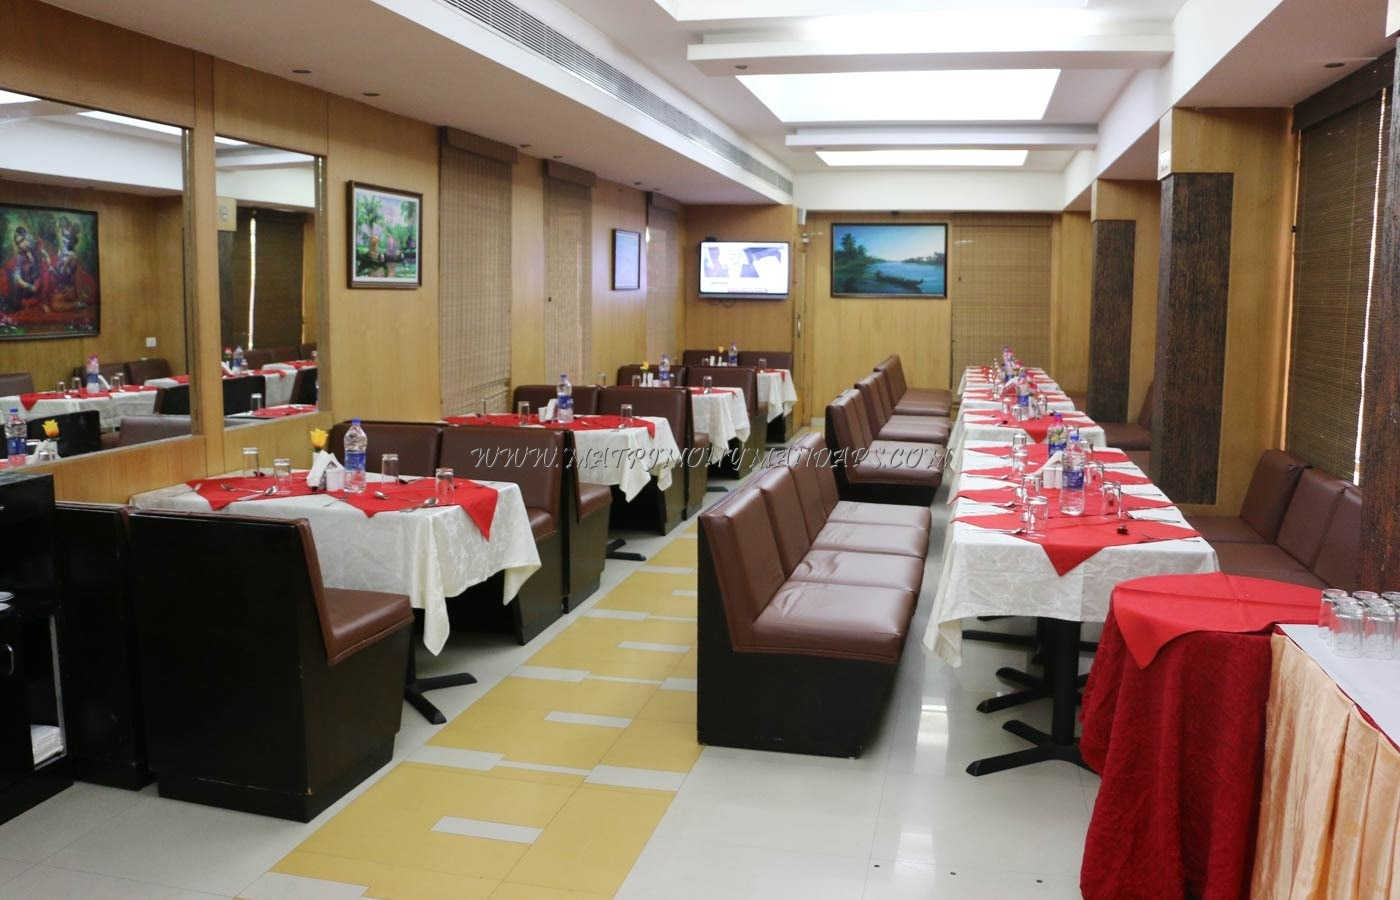 Pattom Royal Hotel Royal Banquet Hall 2 - Pre-function Area